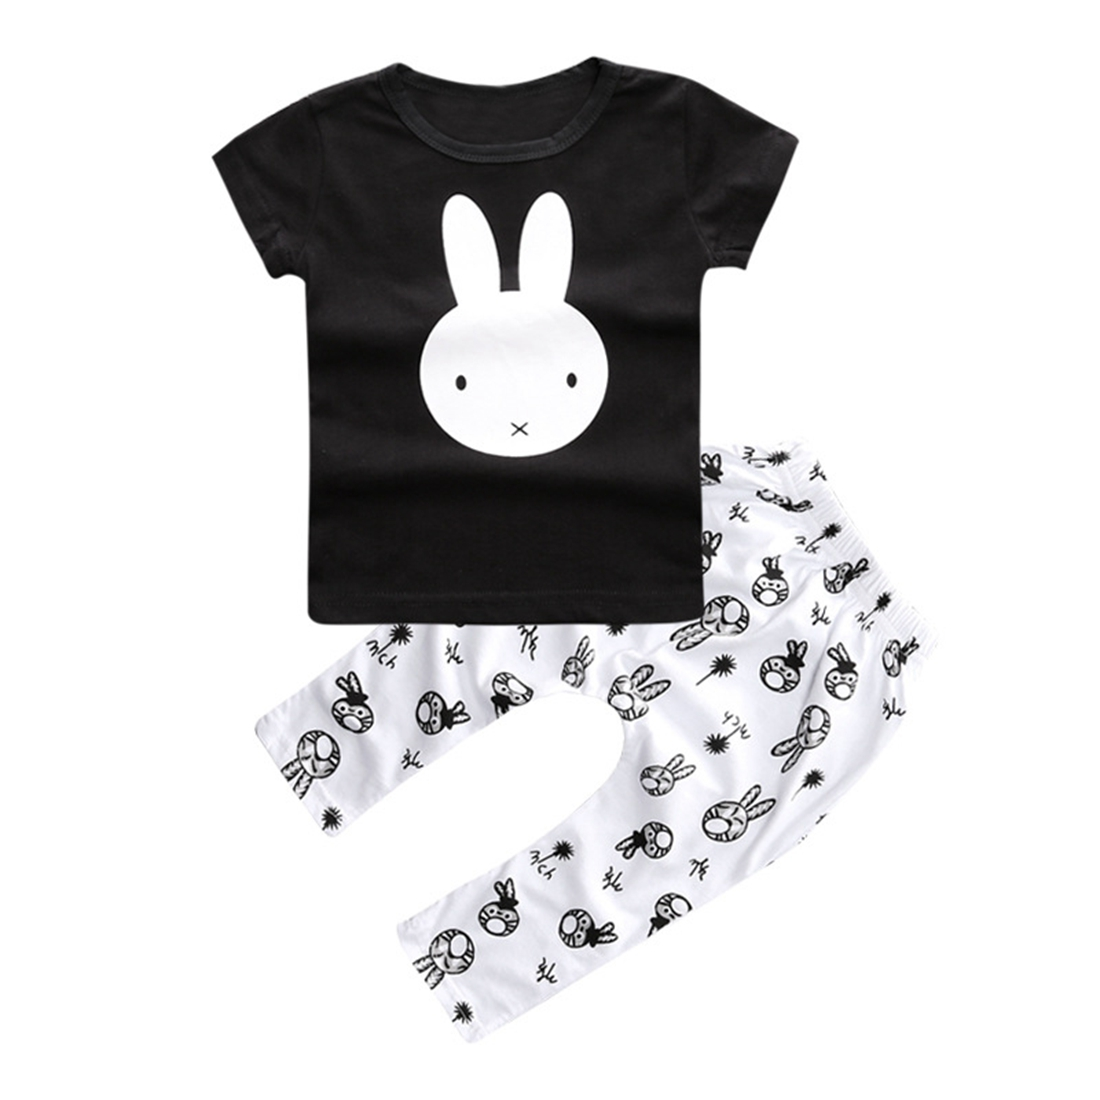 HOT SALE Cute Bunny Infant Baby Boy Girl T-Shirt Pant Outfit Set Clothes 6-12m